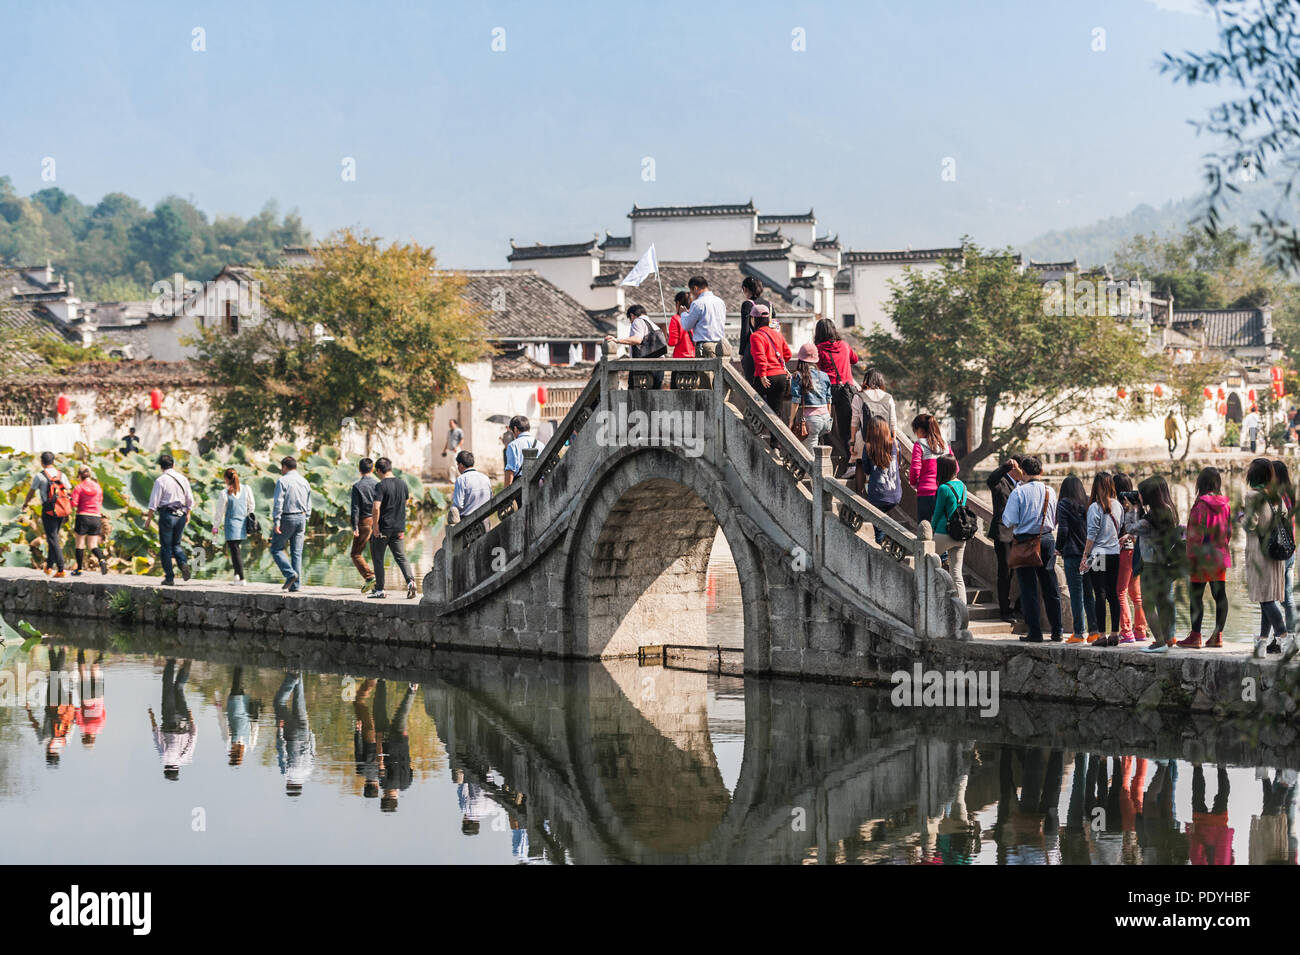 Tourists heading across the bridge to visit Hongcun Village, China. White buildings with ornate roofs. An ancient picturesque village. - Stock Image